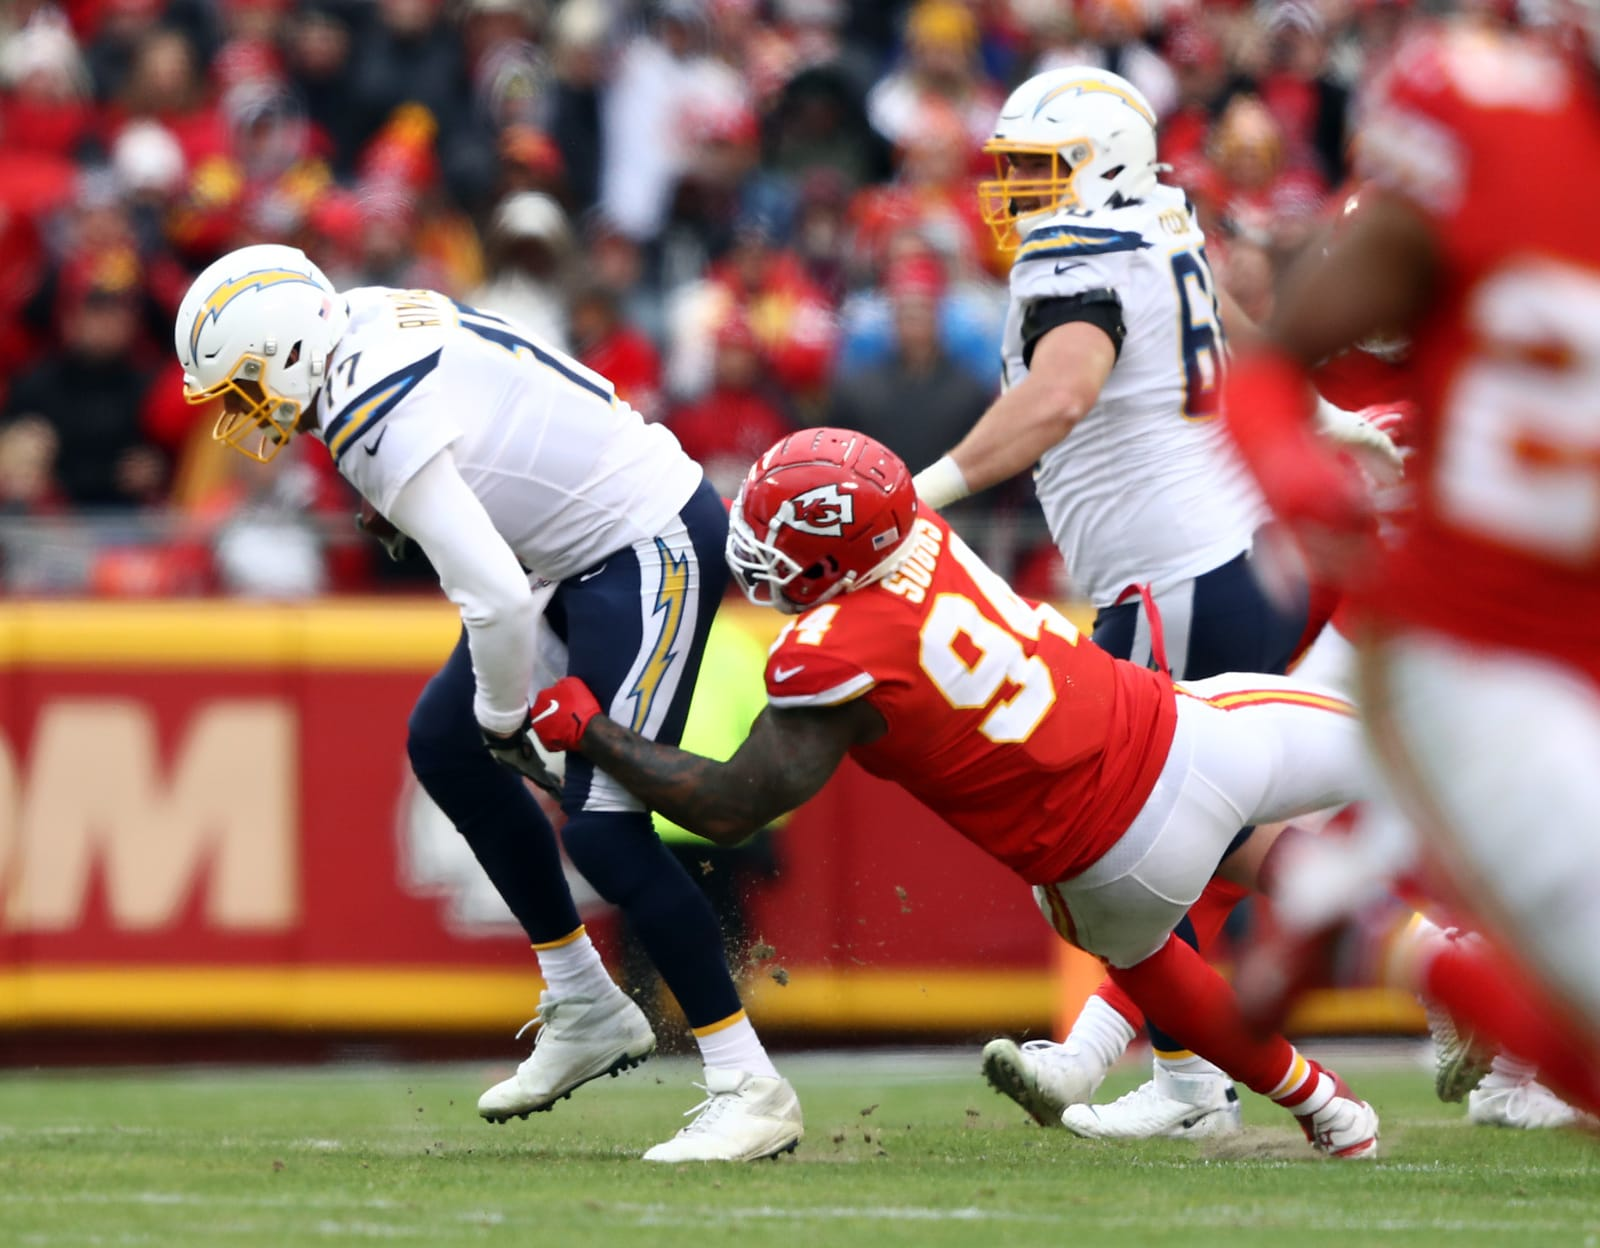 Los Angeles Chargers vs. Kansas City Chiefs